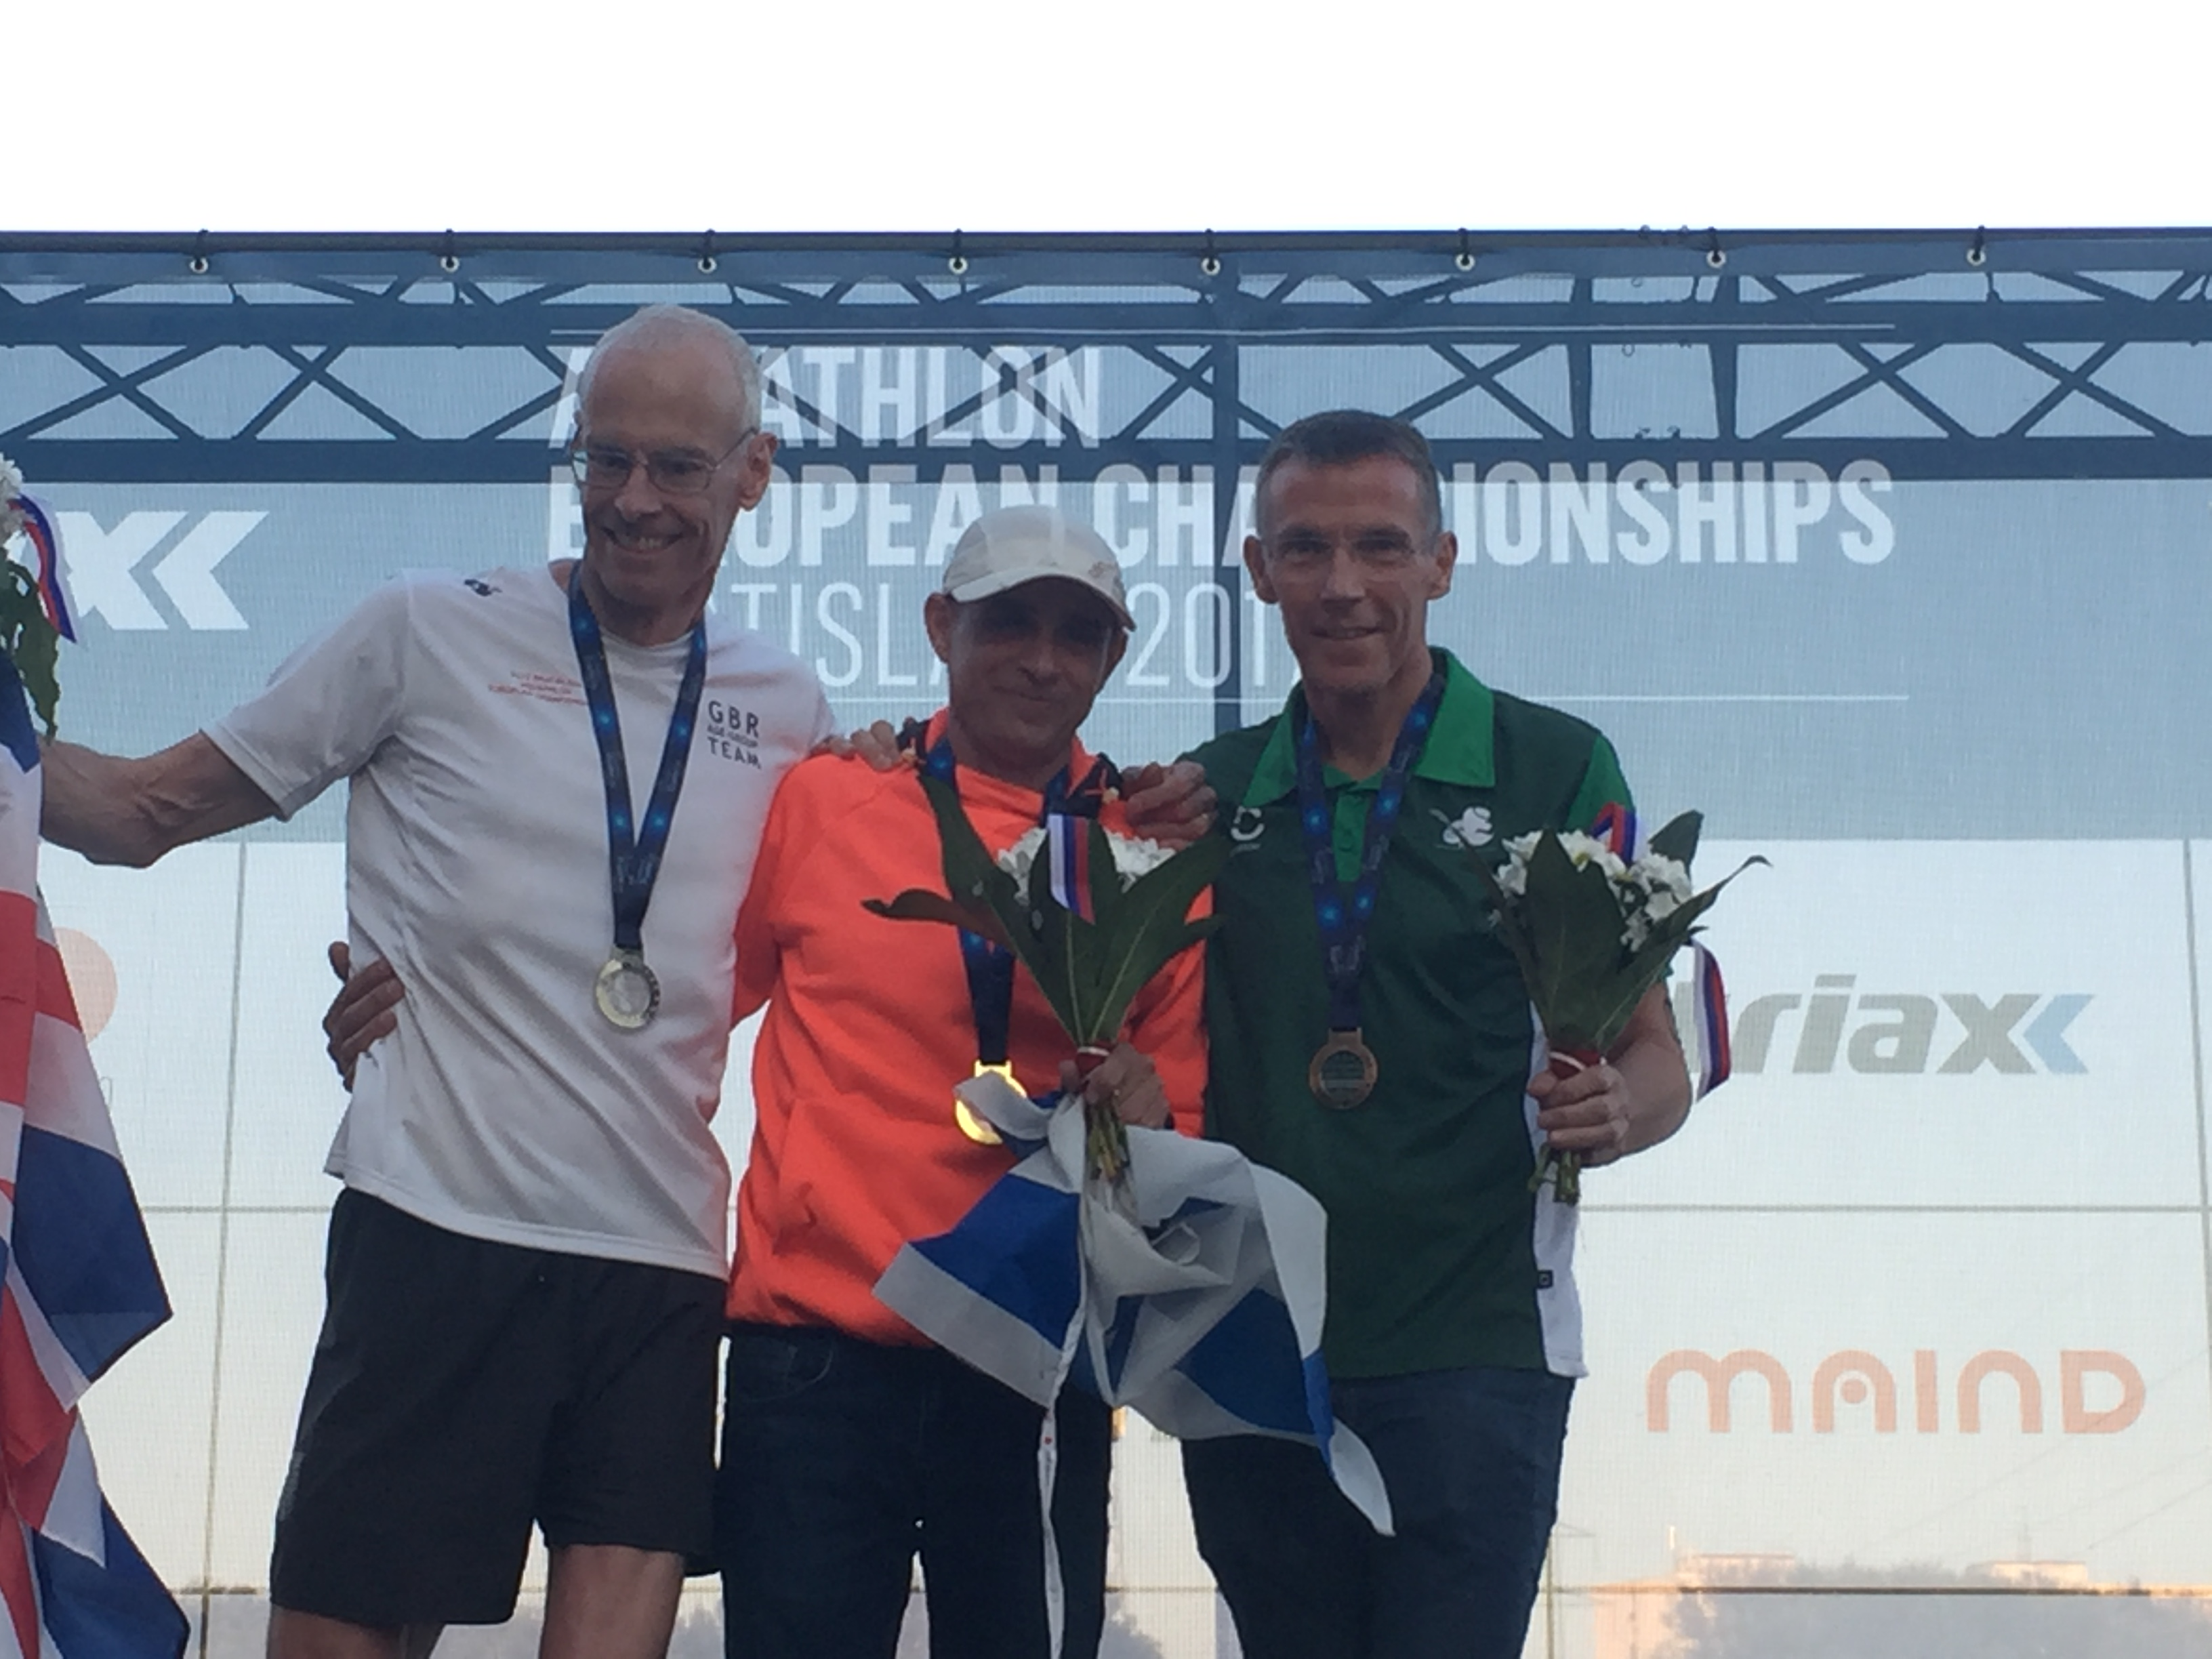 Neil-Cooper-Podium-Euro-Aquathlon-Age-Group-Champs-2017